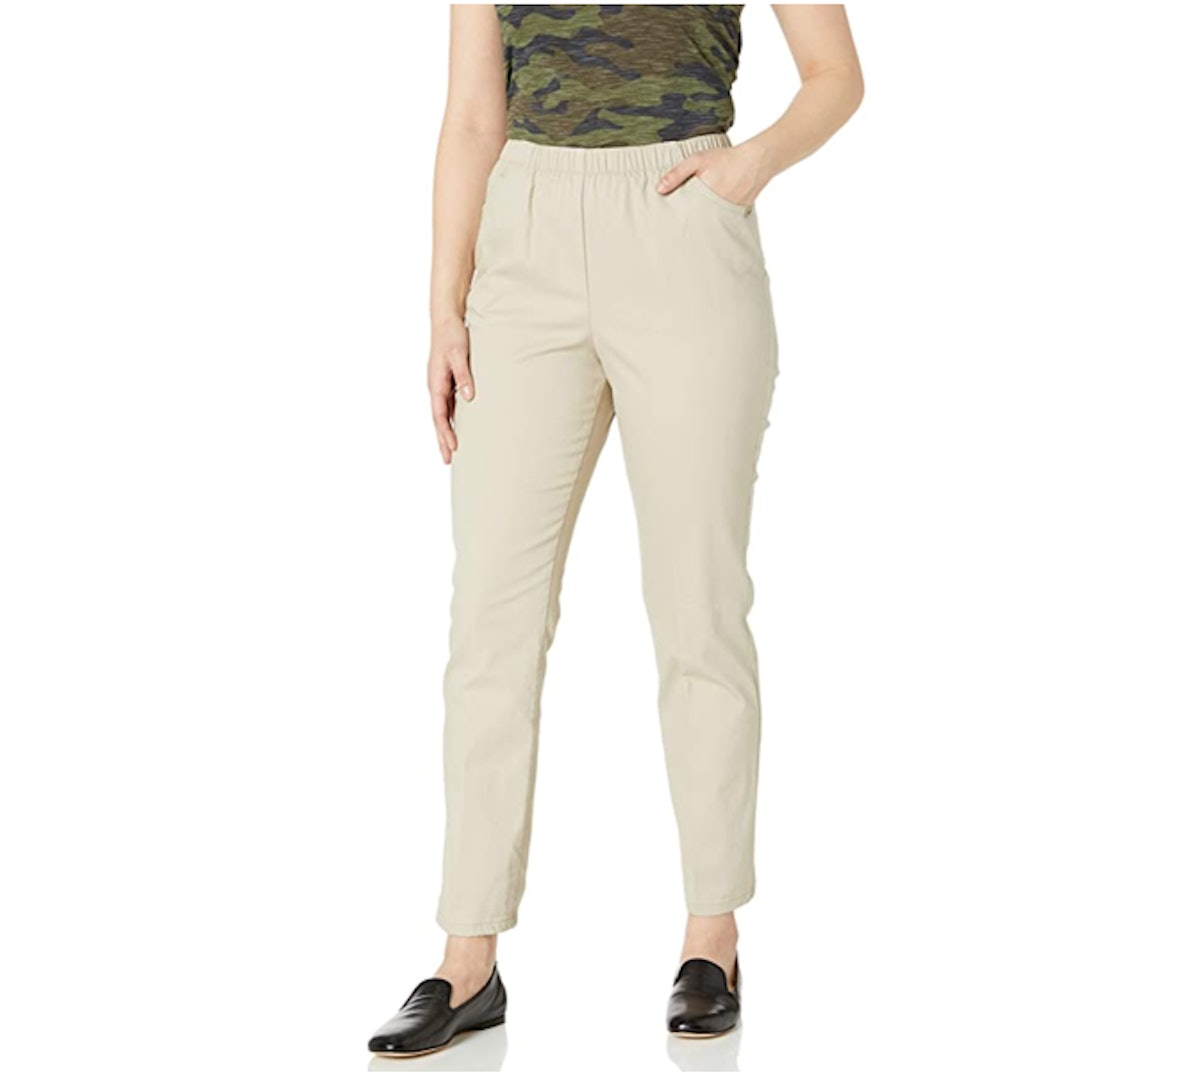 Chic Classic Collection Elastic Pants